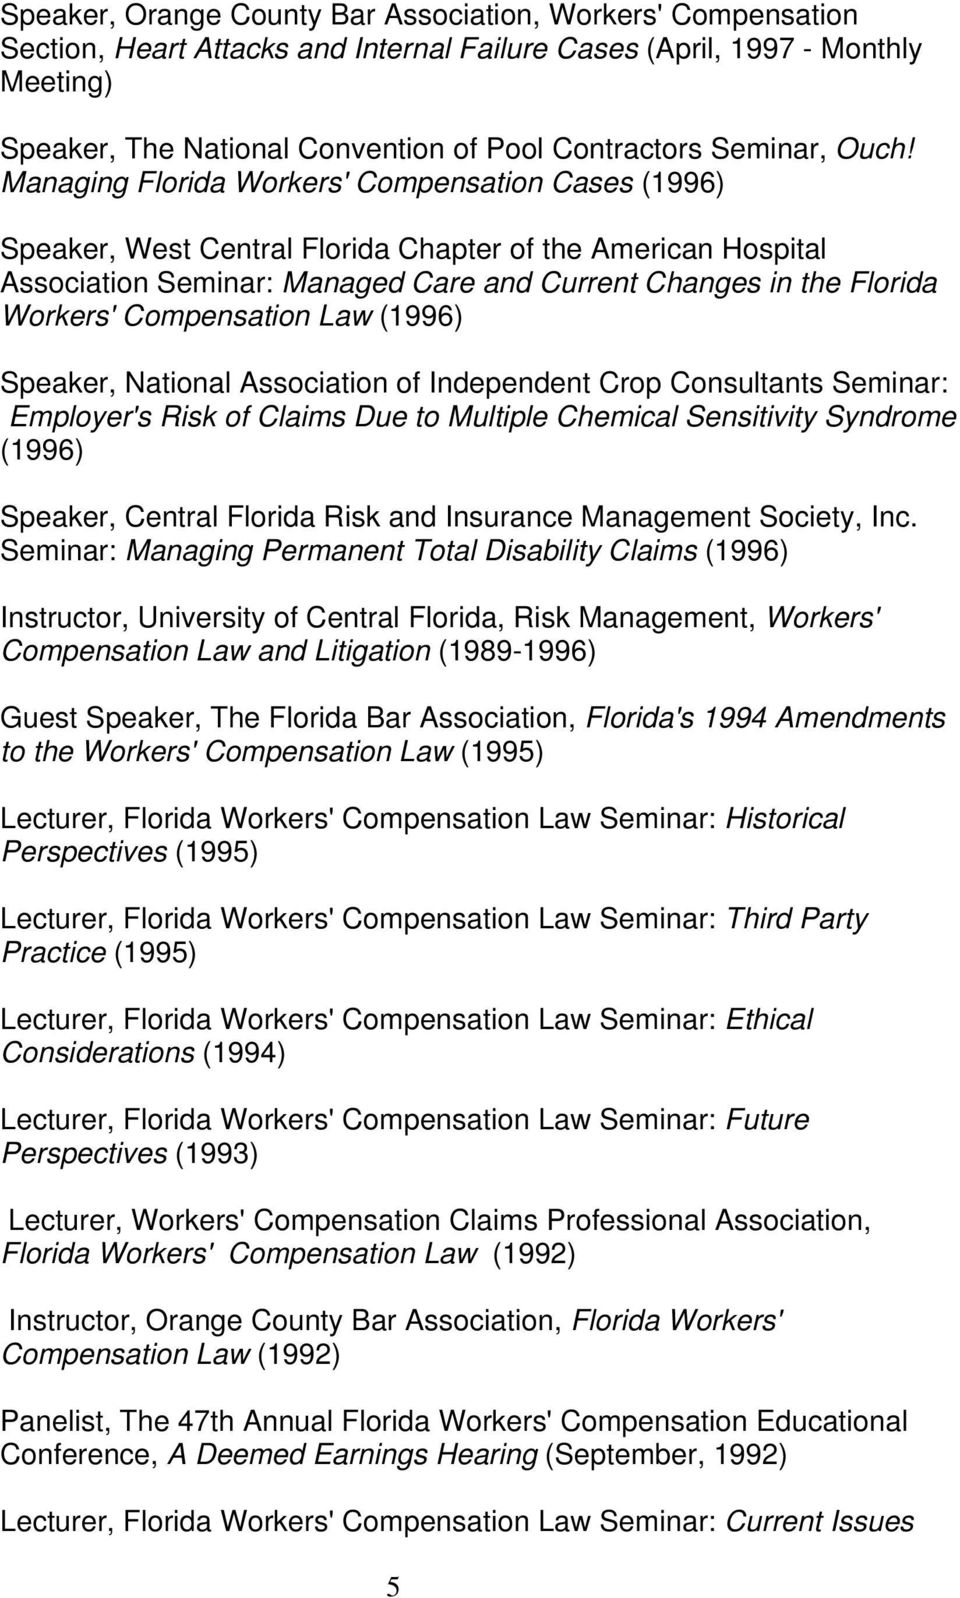 Managing Florida Workers' Compensation Cases (1996) Speaker, West Central Florida Chapter of the American Hospital Association Seminar: Managed Care and Current Changes in the Florida Workers'